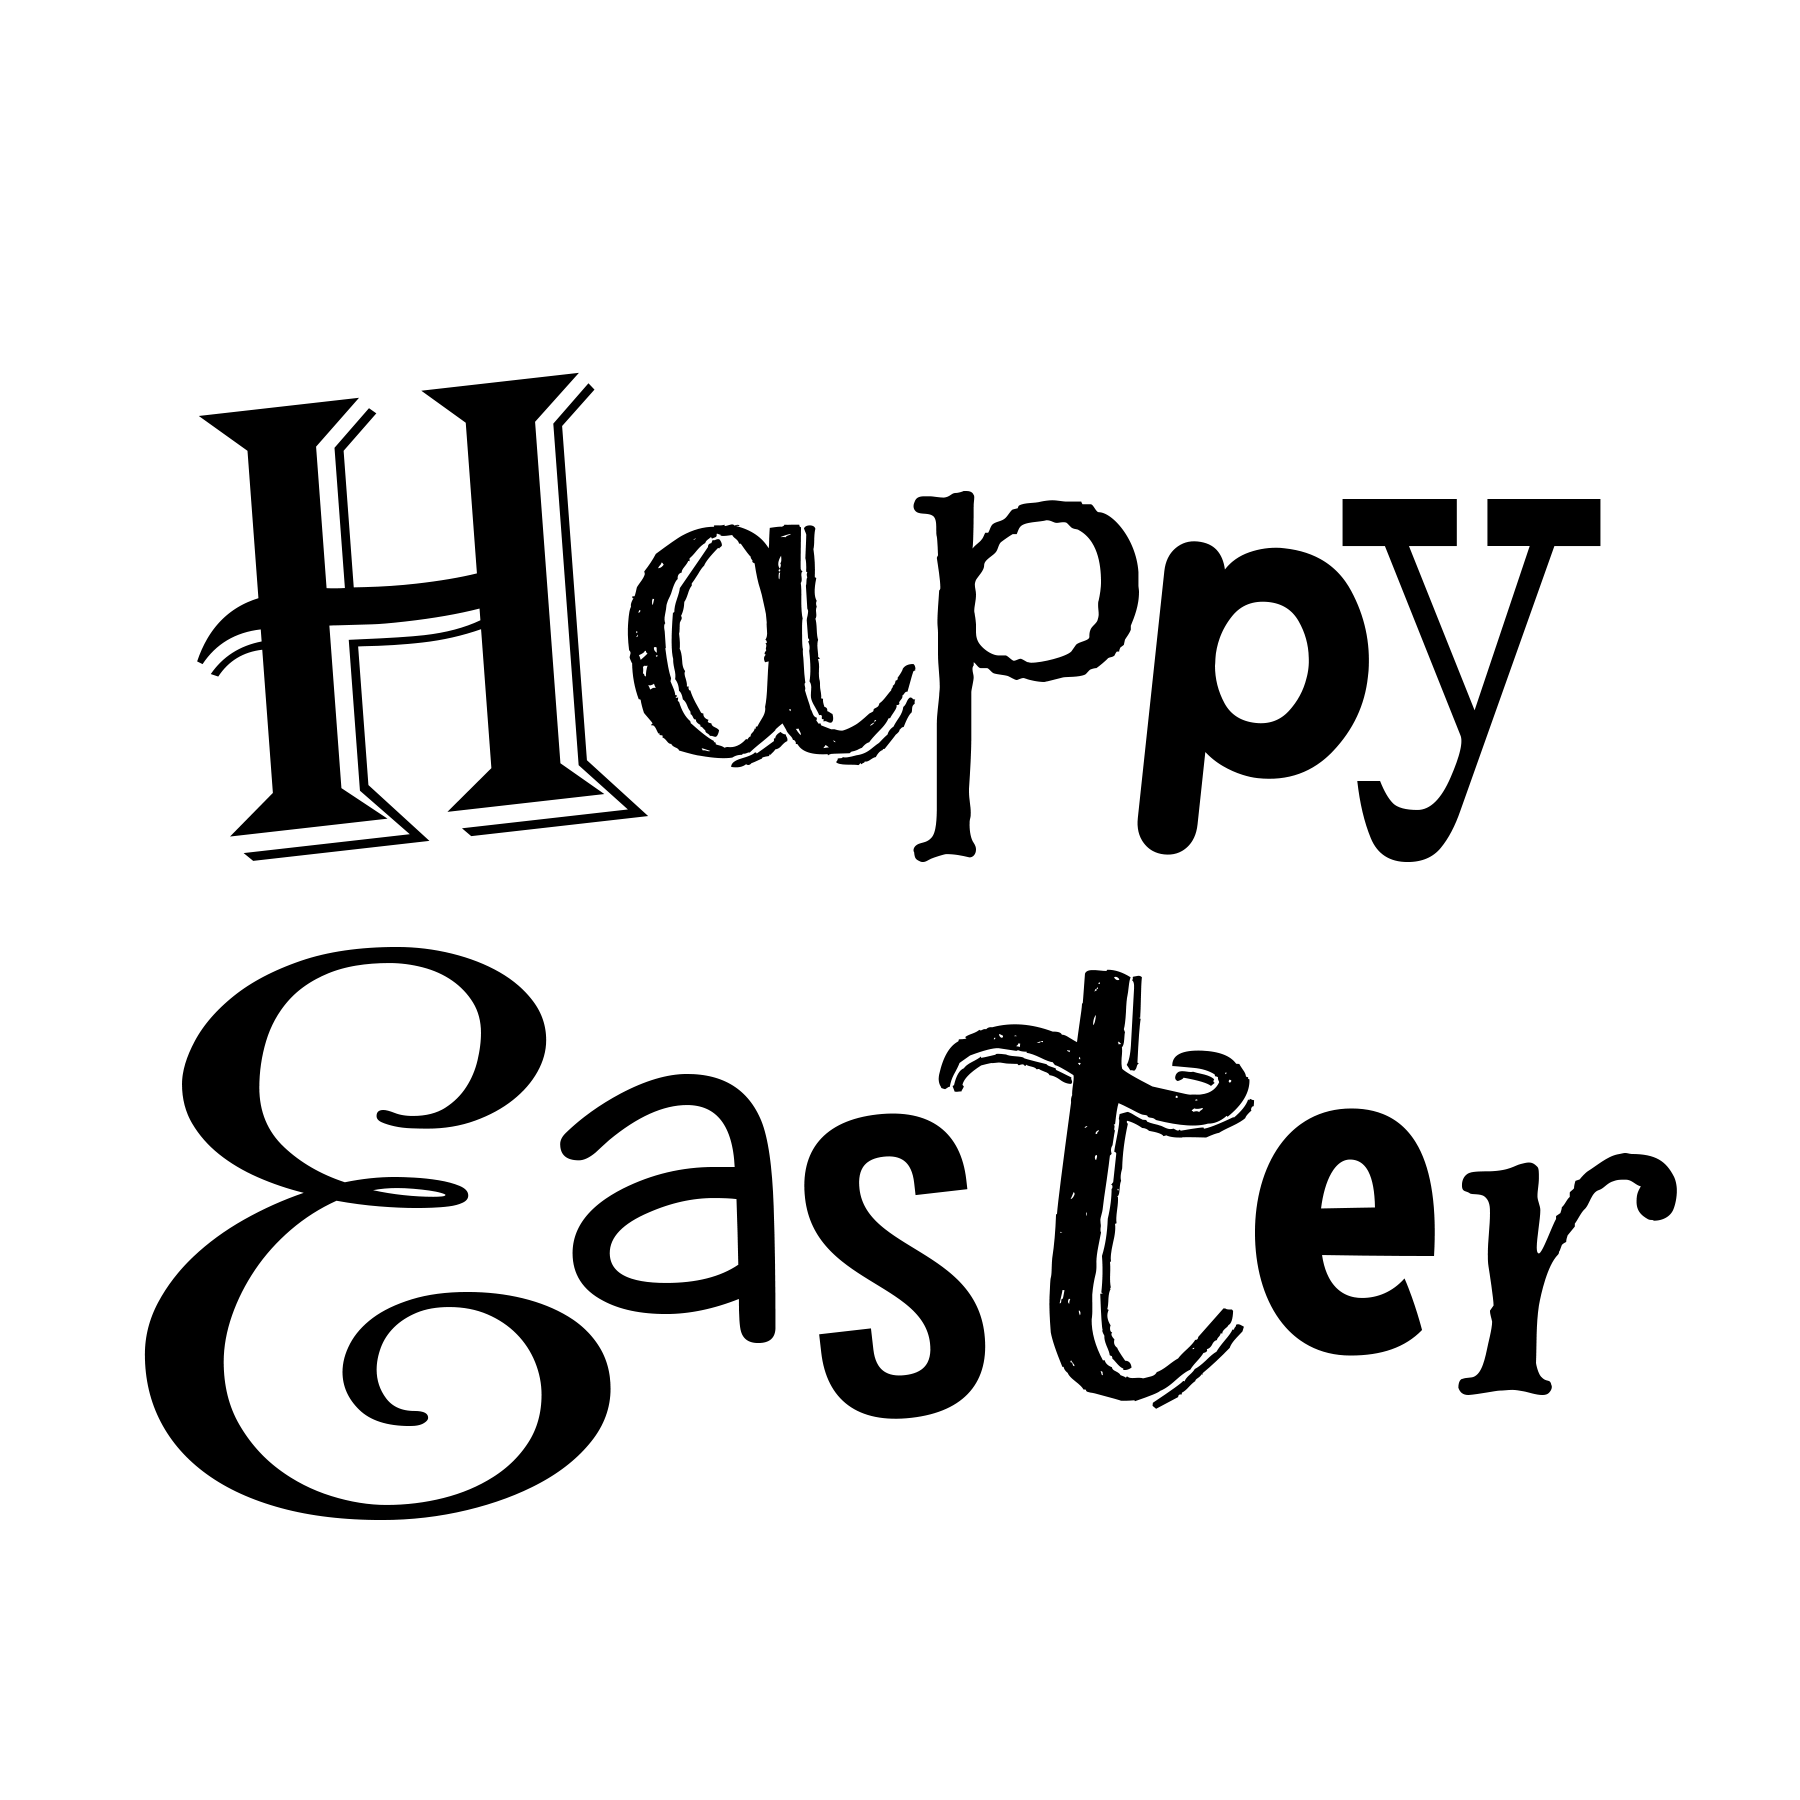 Lds Clipart Easter Lds Easter Transparent Free For